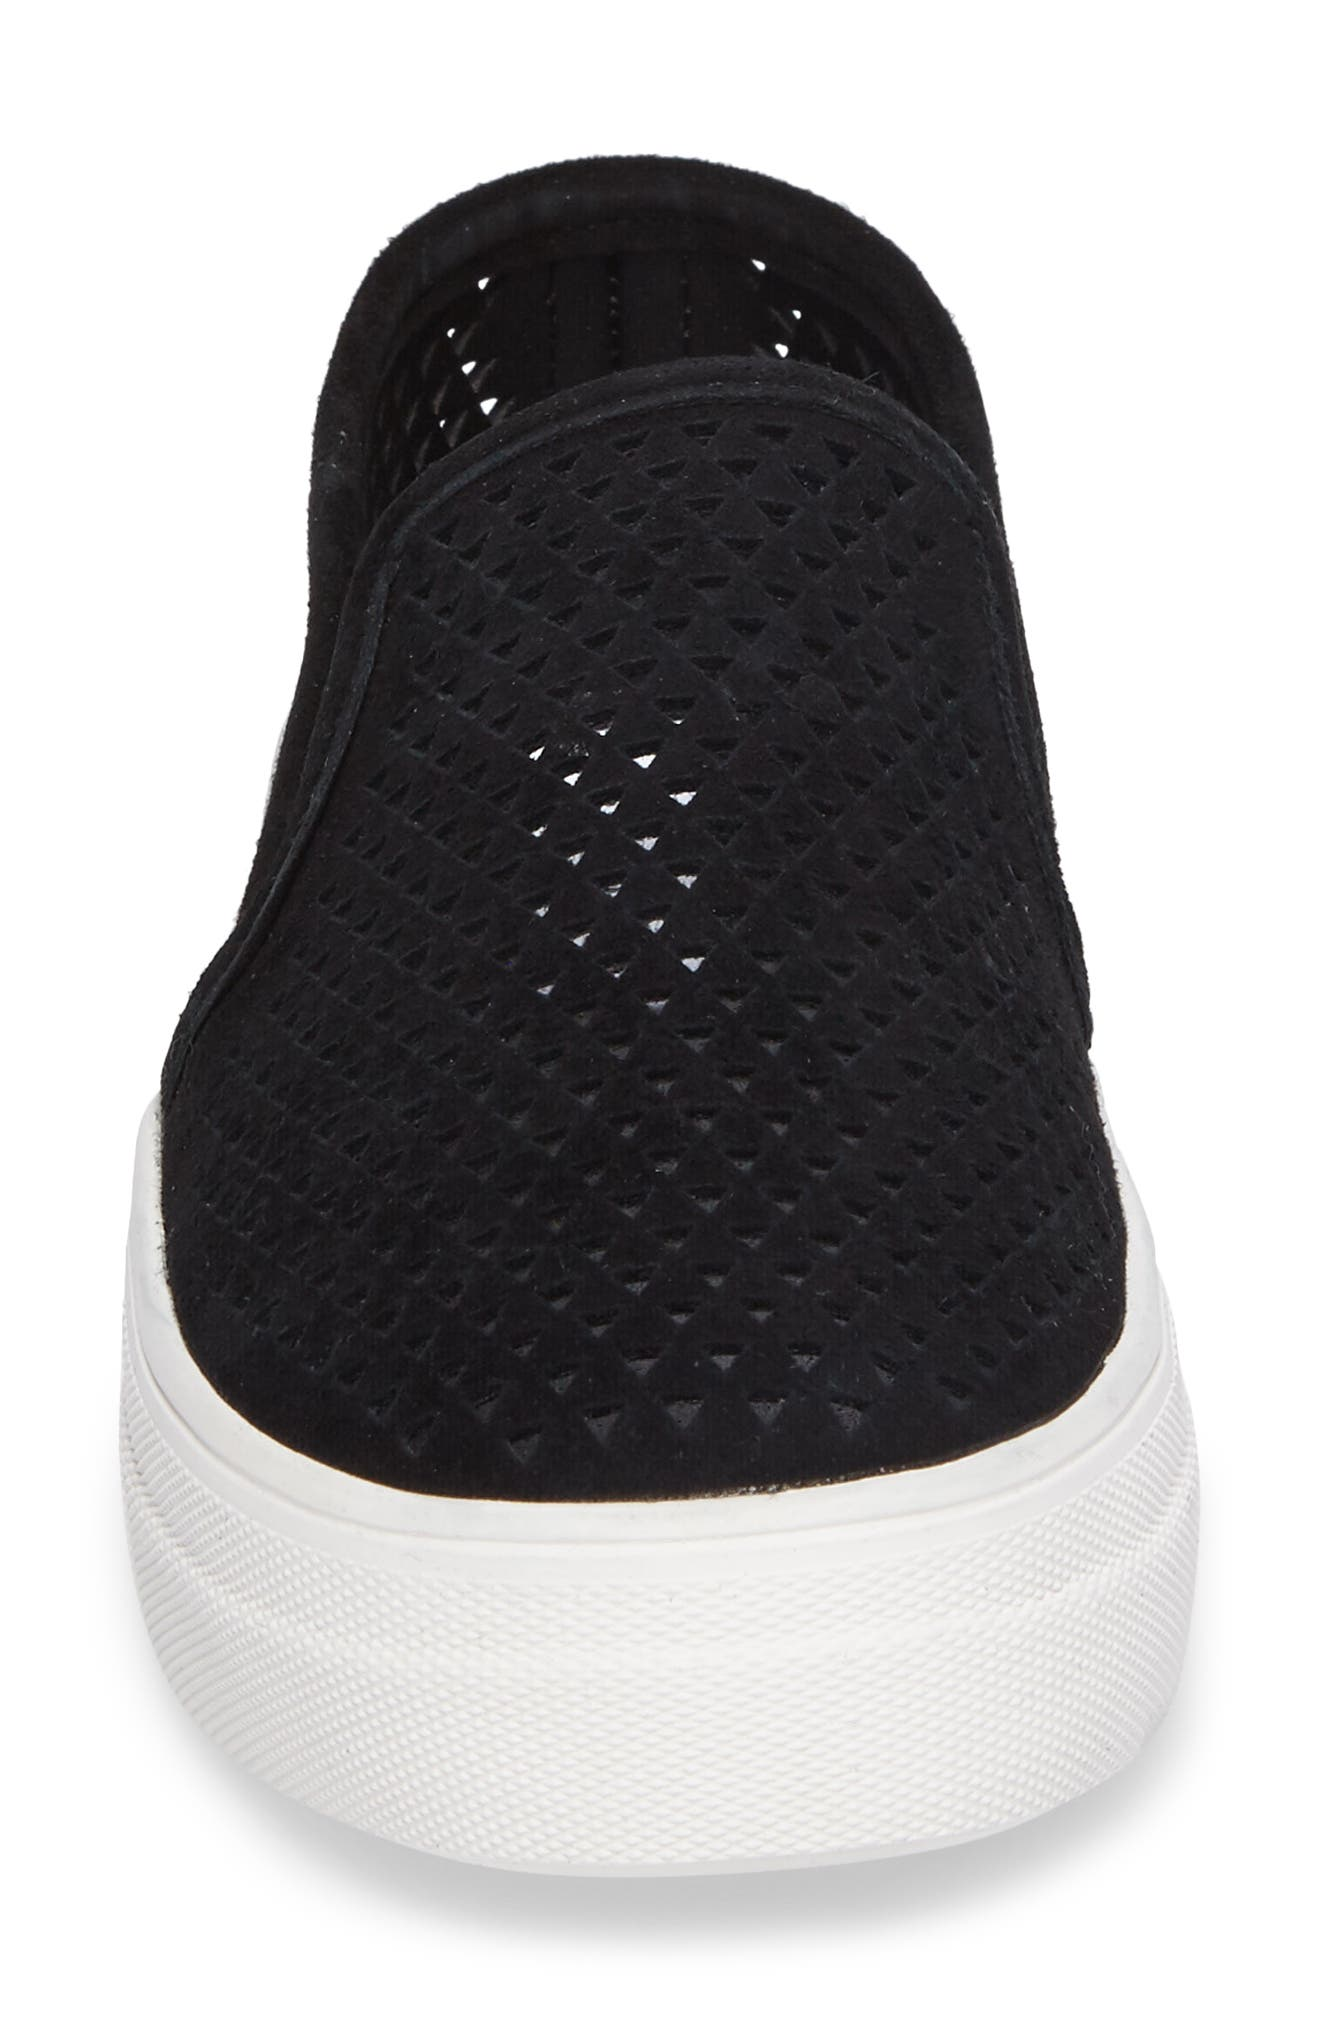 Gills Perforated Slip-On Sneaker,                             Alternate thumbnail 4, color,                             006